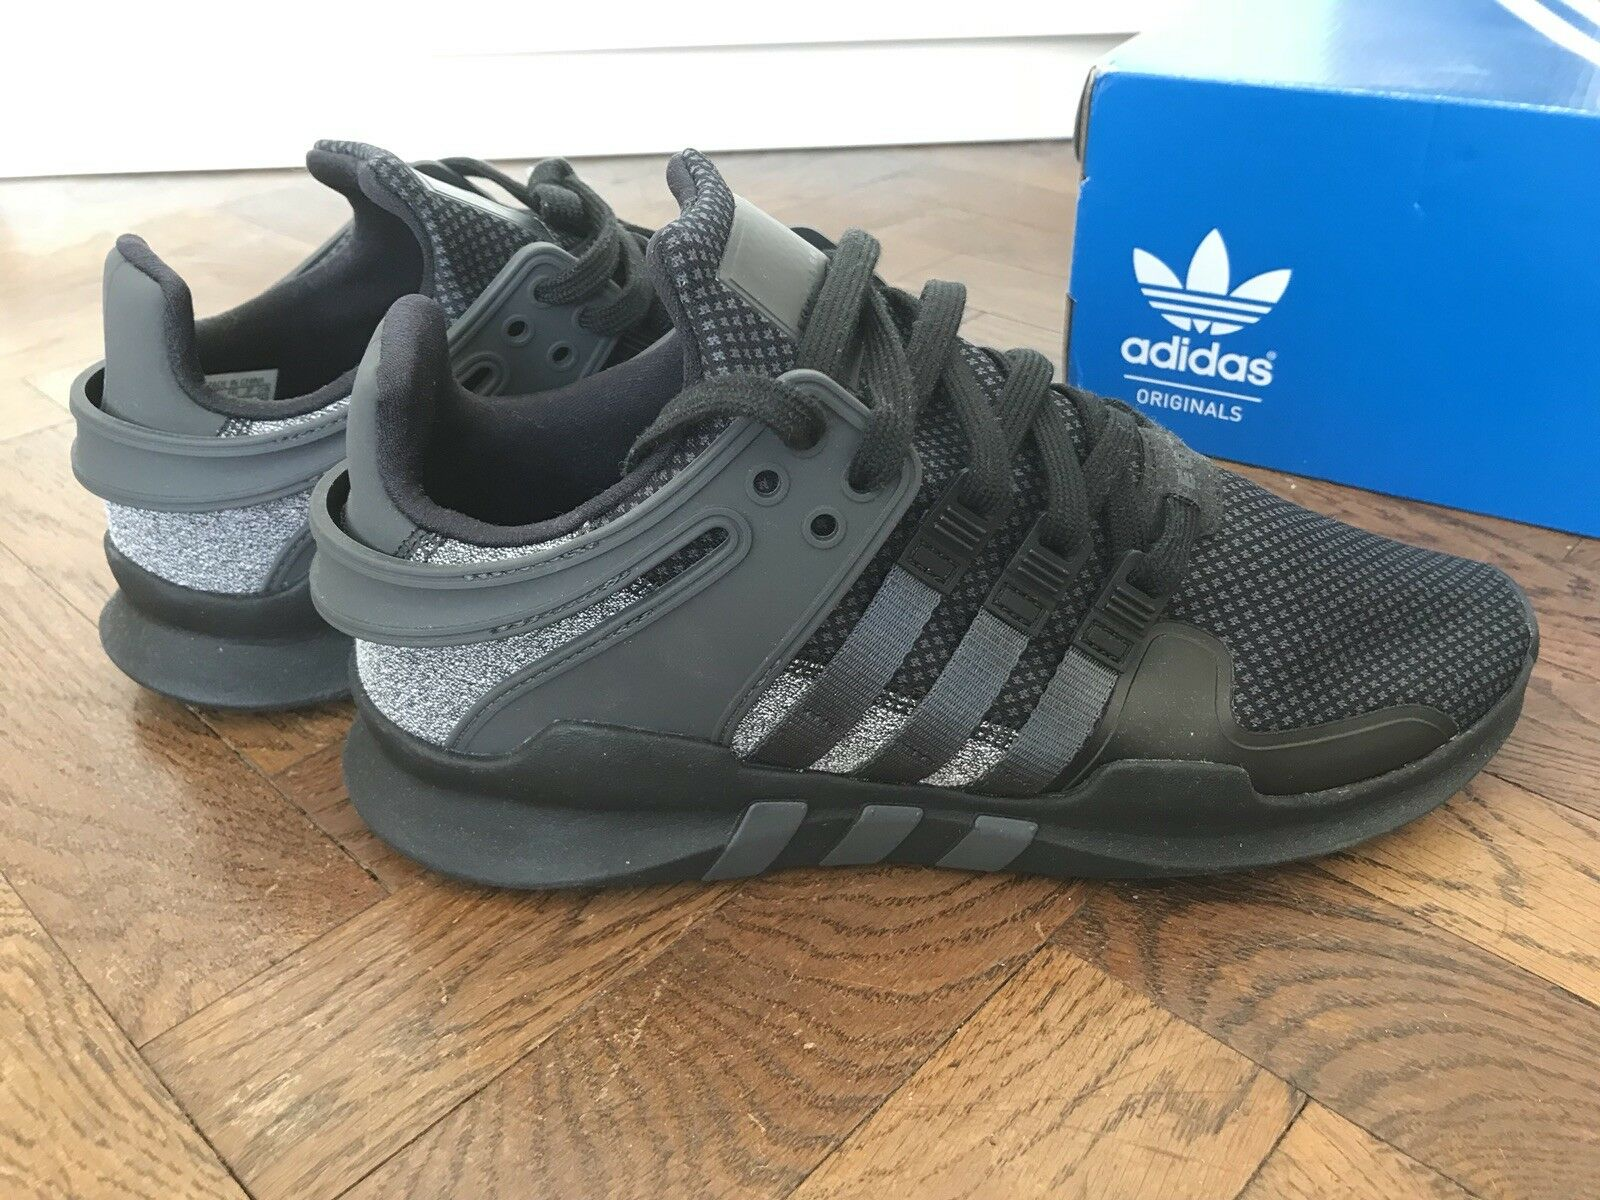 Adidas Originals, Damen Schuhe, Schuhe, Schuhe, Turnschuhe, Equipment Support ADV, CBLK, Gr.7   40  0e2723